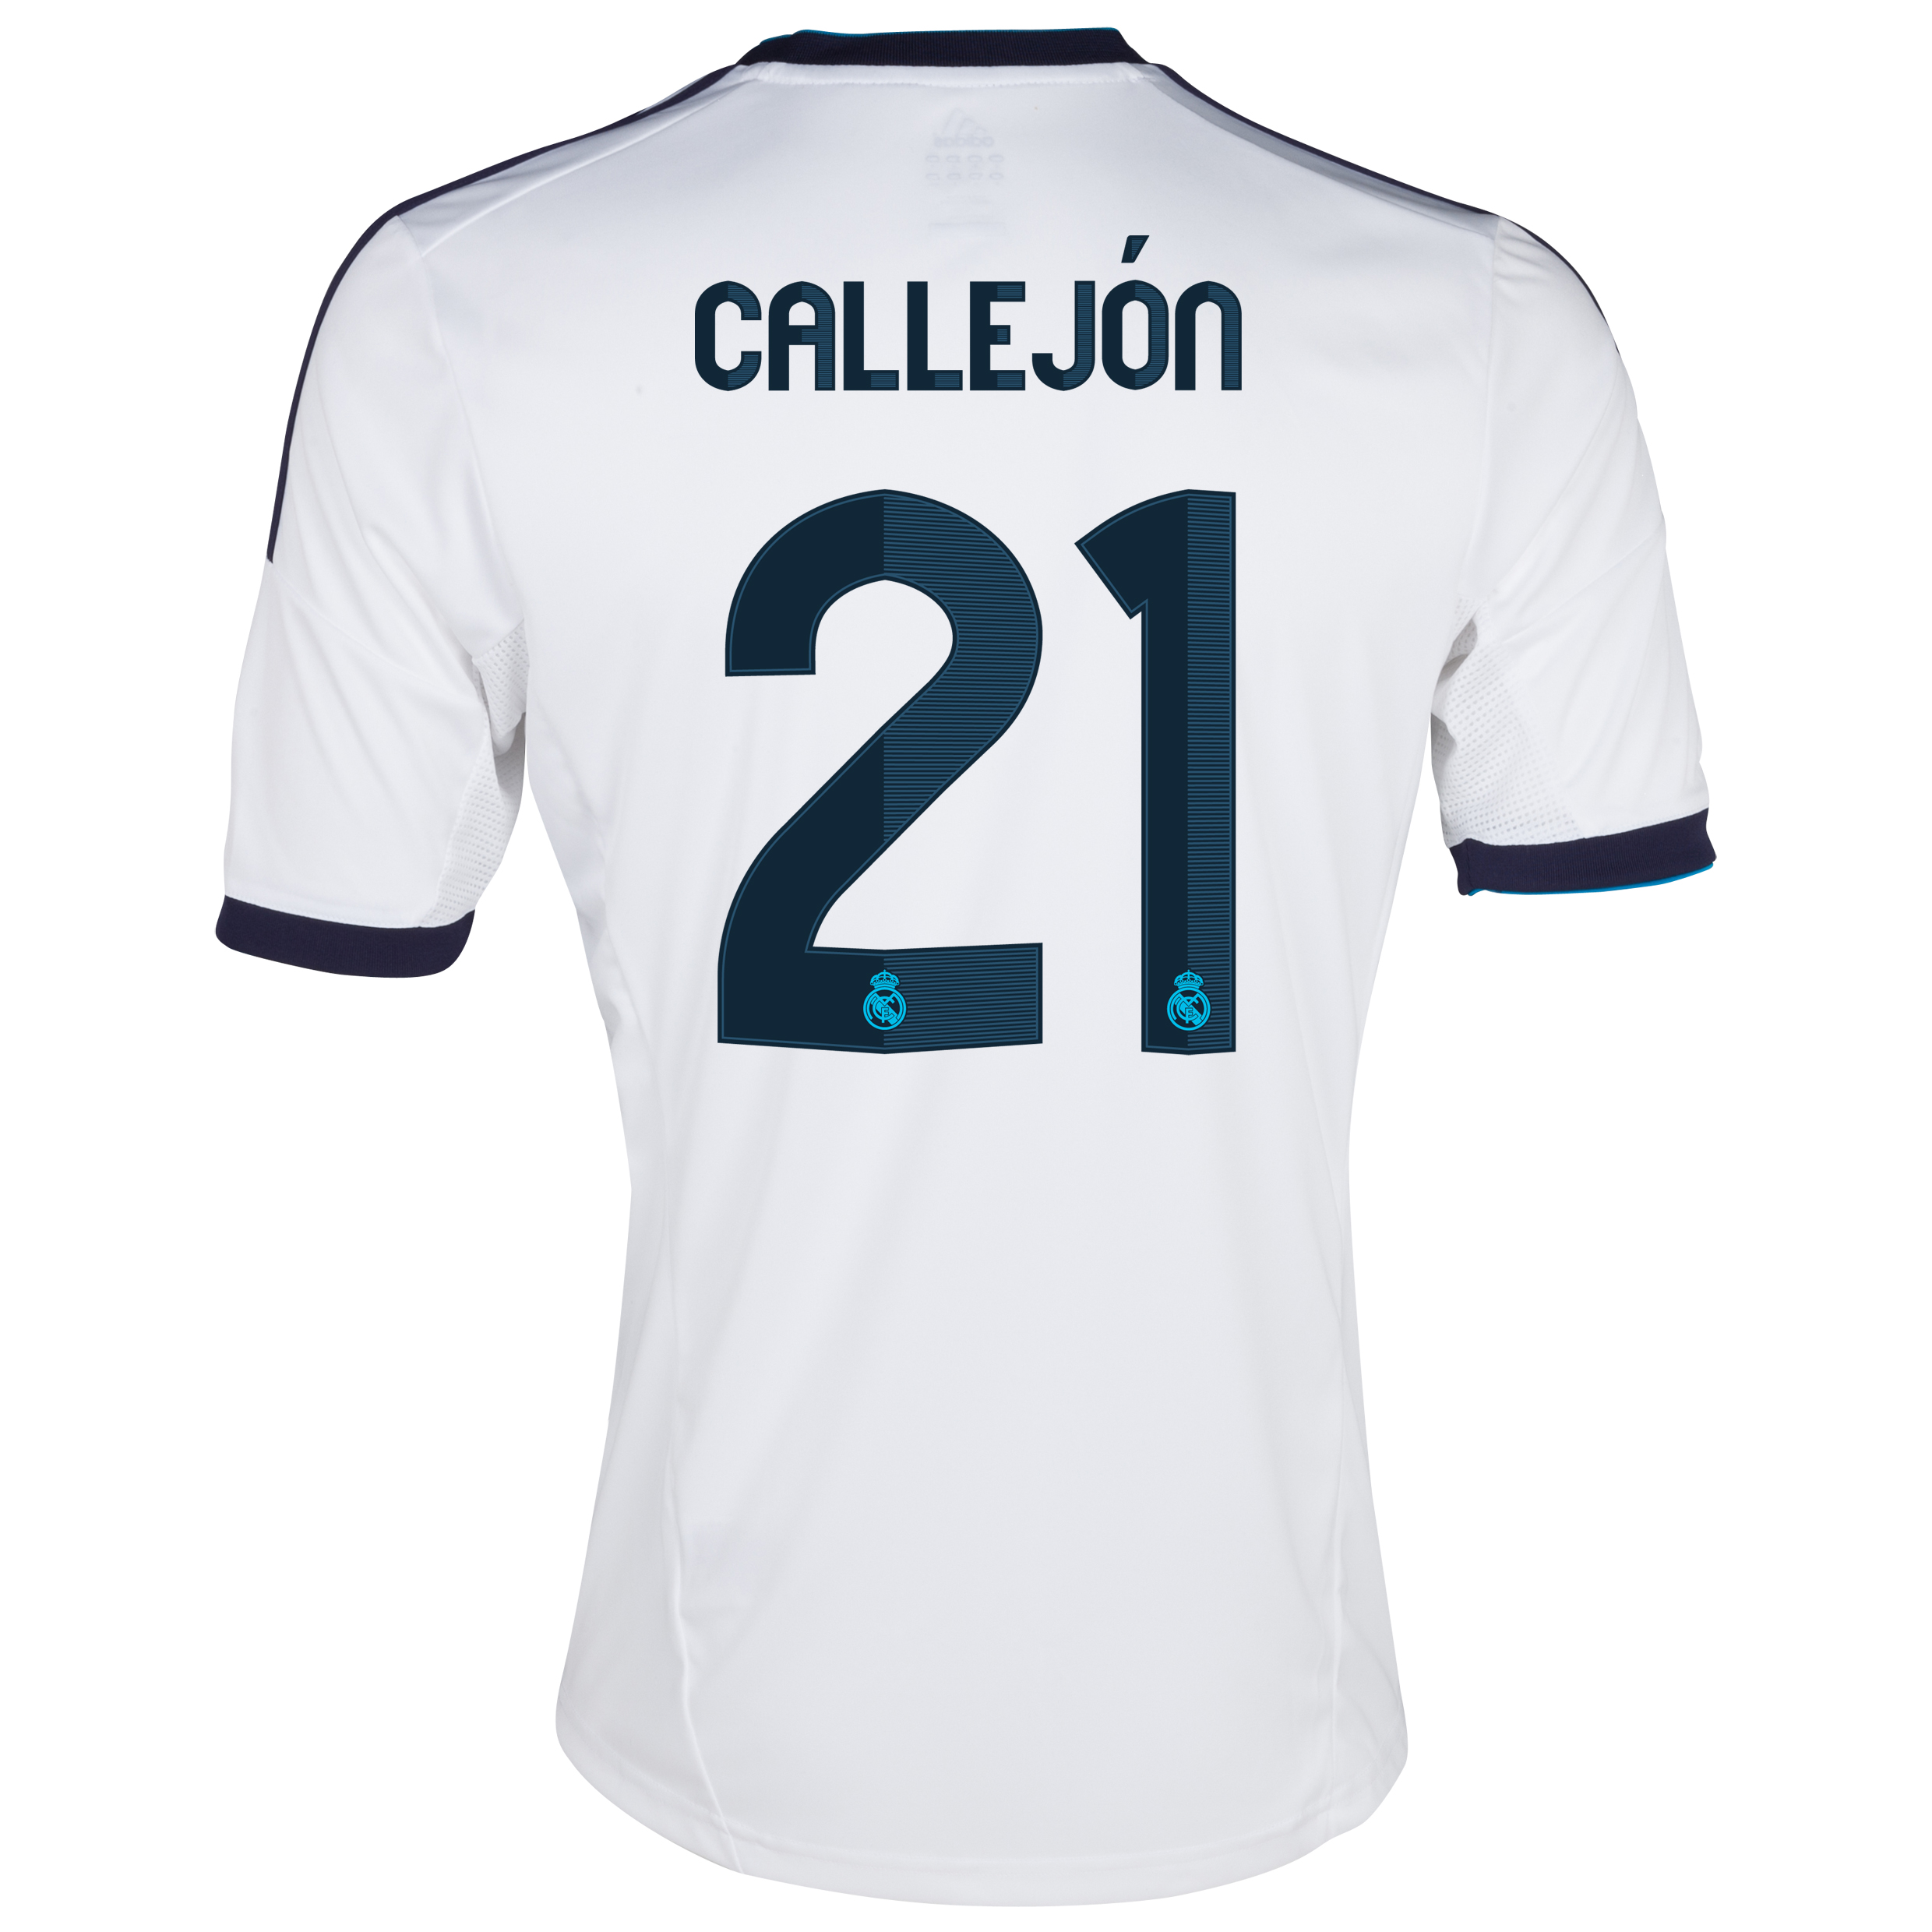 Real Madrid Home Shirt 2012/13 with Callejón 21 printing